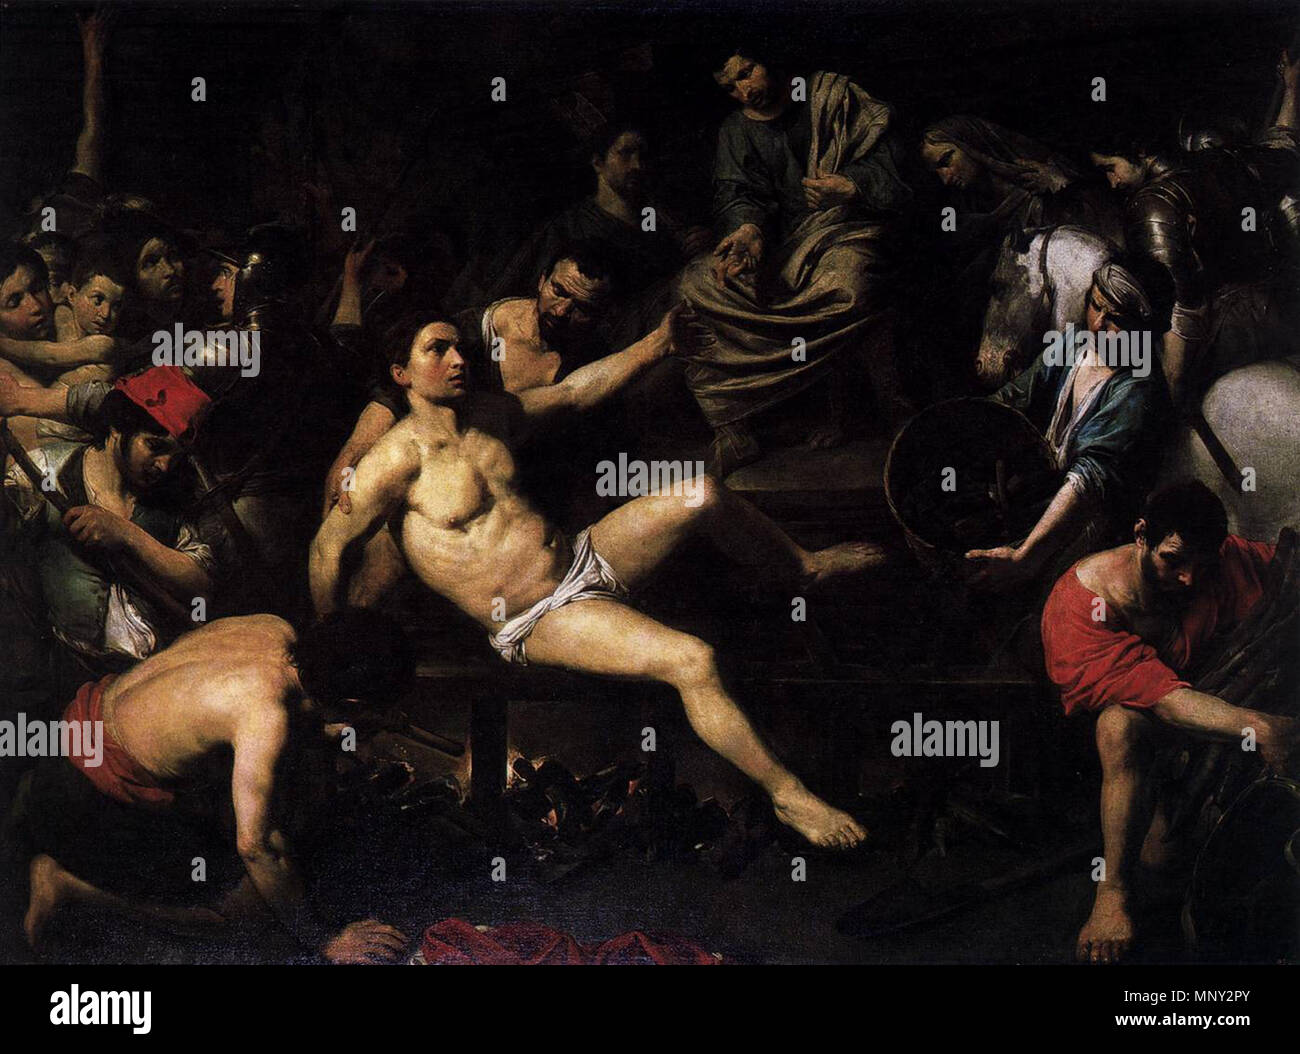 http://www.wga.hu/art/v/valentin/martyrdo.jpg    . 'Martyrdom of St Lawrence', Oil on canvas, 195 x 261 cm Museo del Prado, Madrid . between 1621 and 1622.   Valentin de Boulogne (1591–1632)  Alternative names Jean Valentin Le Valentin  Description French painter  Date of birth/death 3 January 1591 (baptised) 20 August 1632 (buried)  Location of birth/death Coulommiers Rome  Work location Rome (1612-1632)  Authority control  : Q1337275 VIAF:120746211 ISNI:0000 0001 1580 793X ULAN:500021073 LCCN:no90018840 WGA:VALENTIN DE BOULOGNE WorldCat 1218 Valentin de Boulogne, Martyrdom of St Lawr - Stock Image